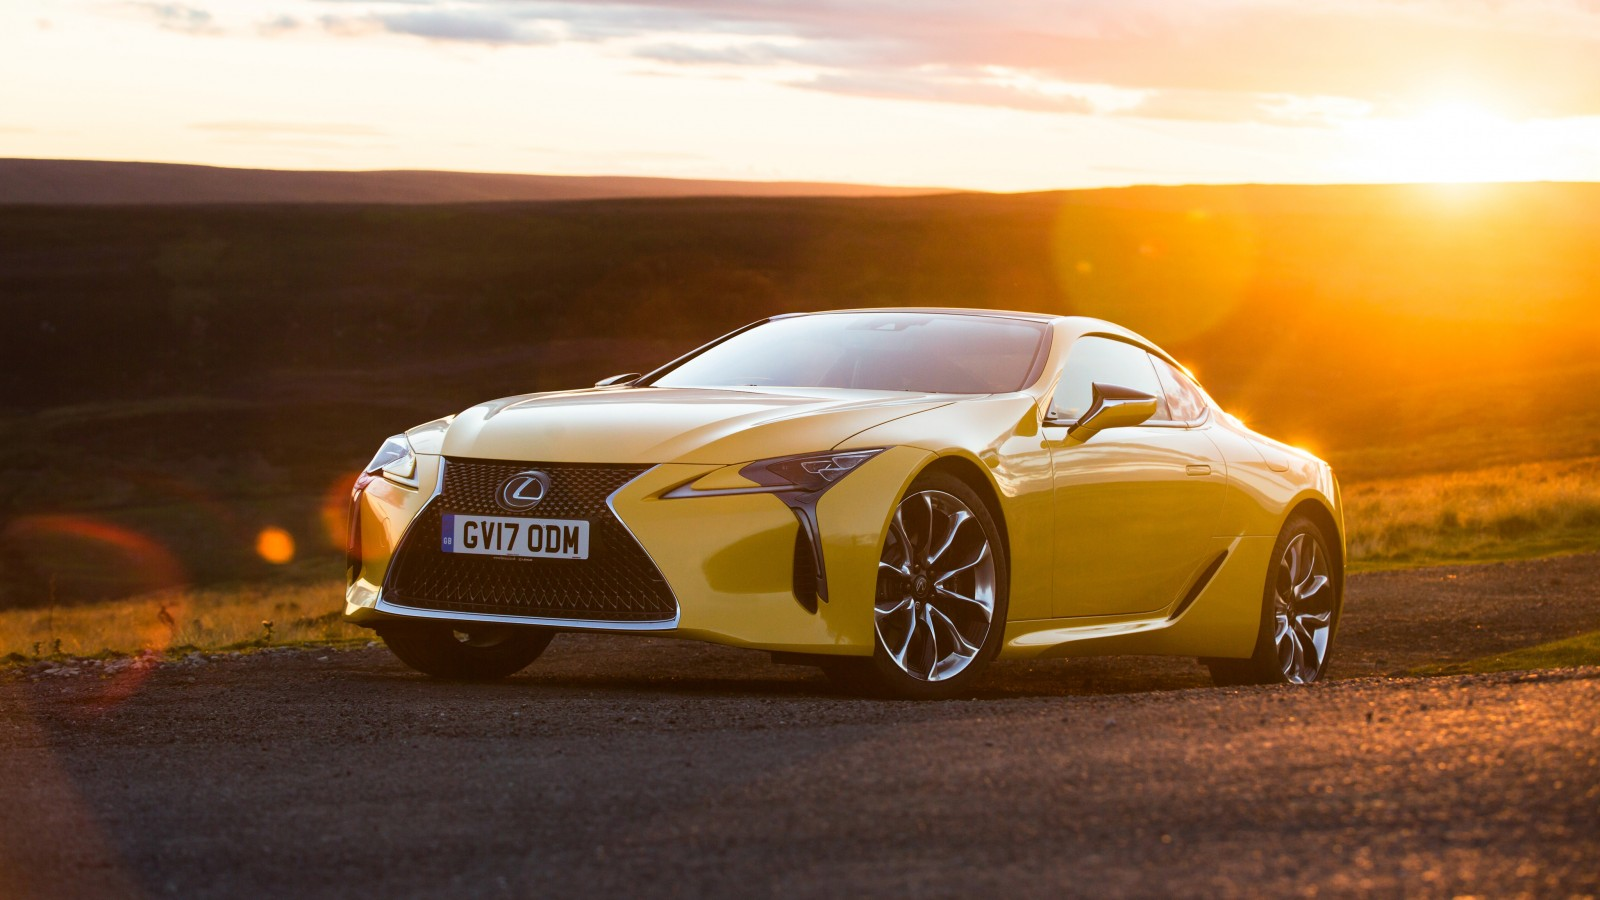 2018 Lexus LC 500 13 Wallpaper | HD Car Wallpapers | ID #8246